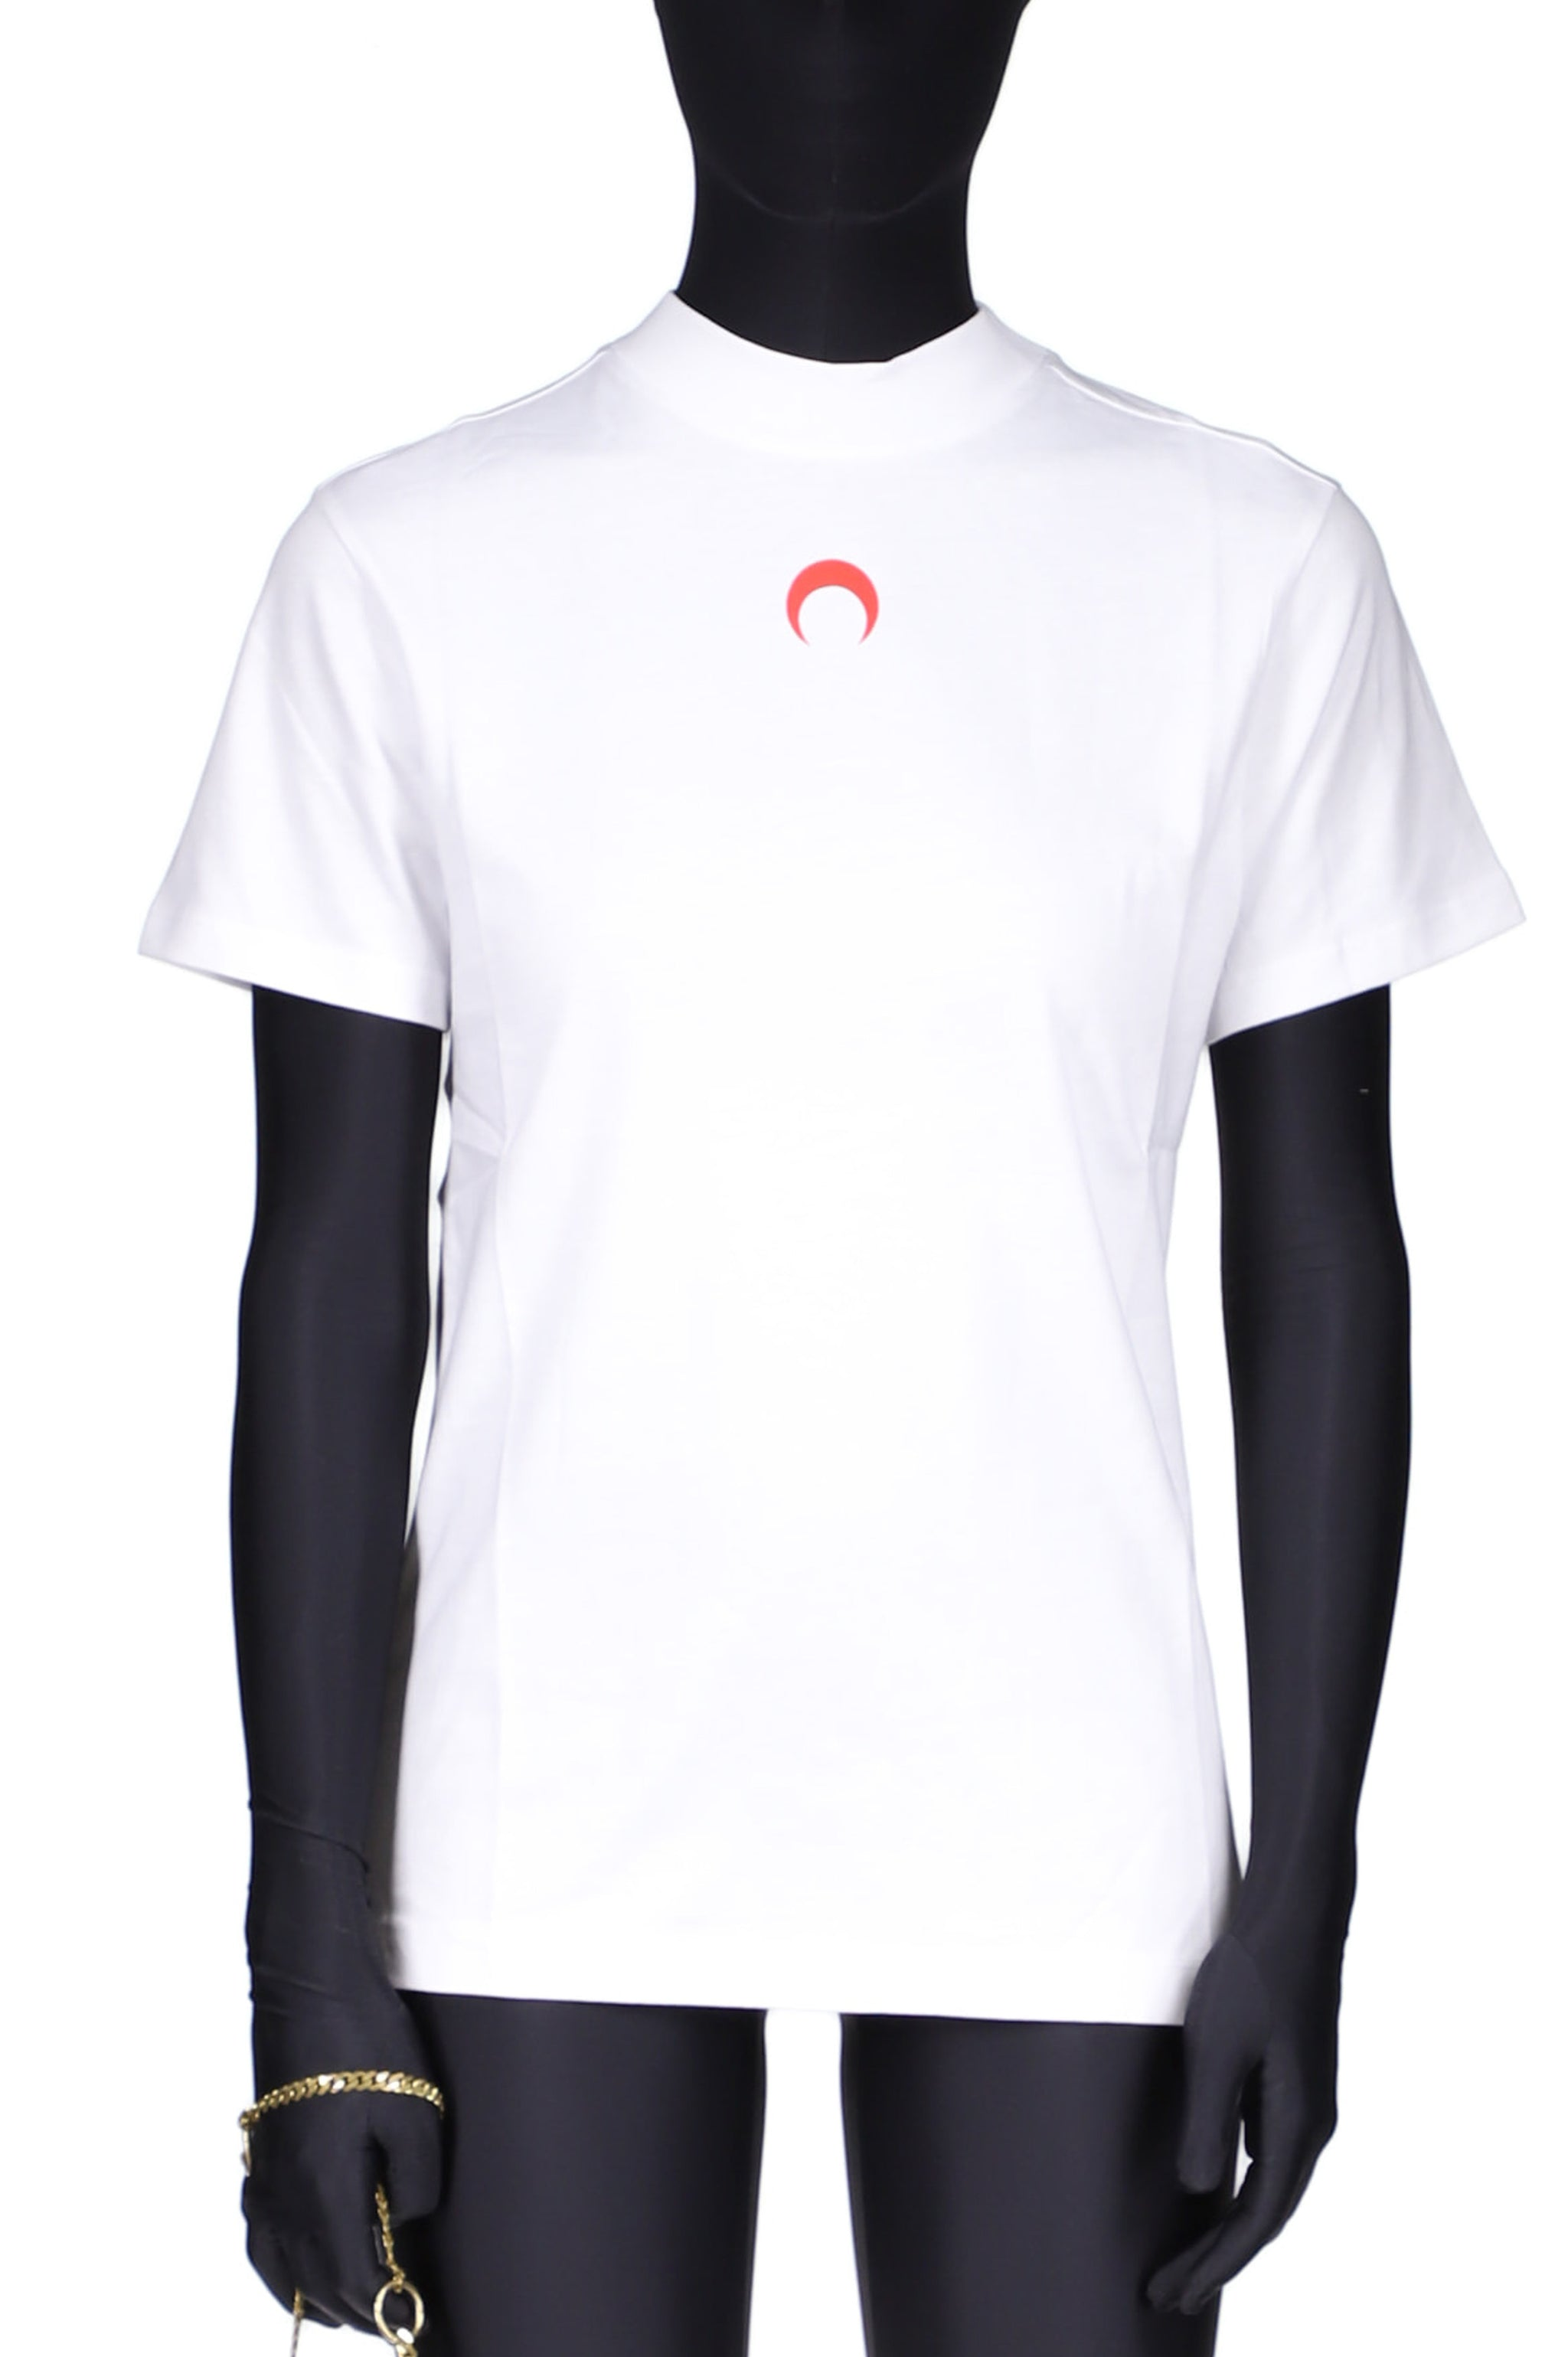 Large Fit T-shirt White/Red